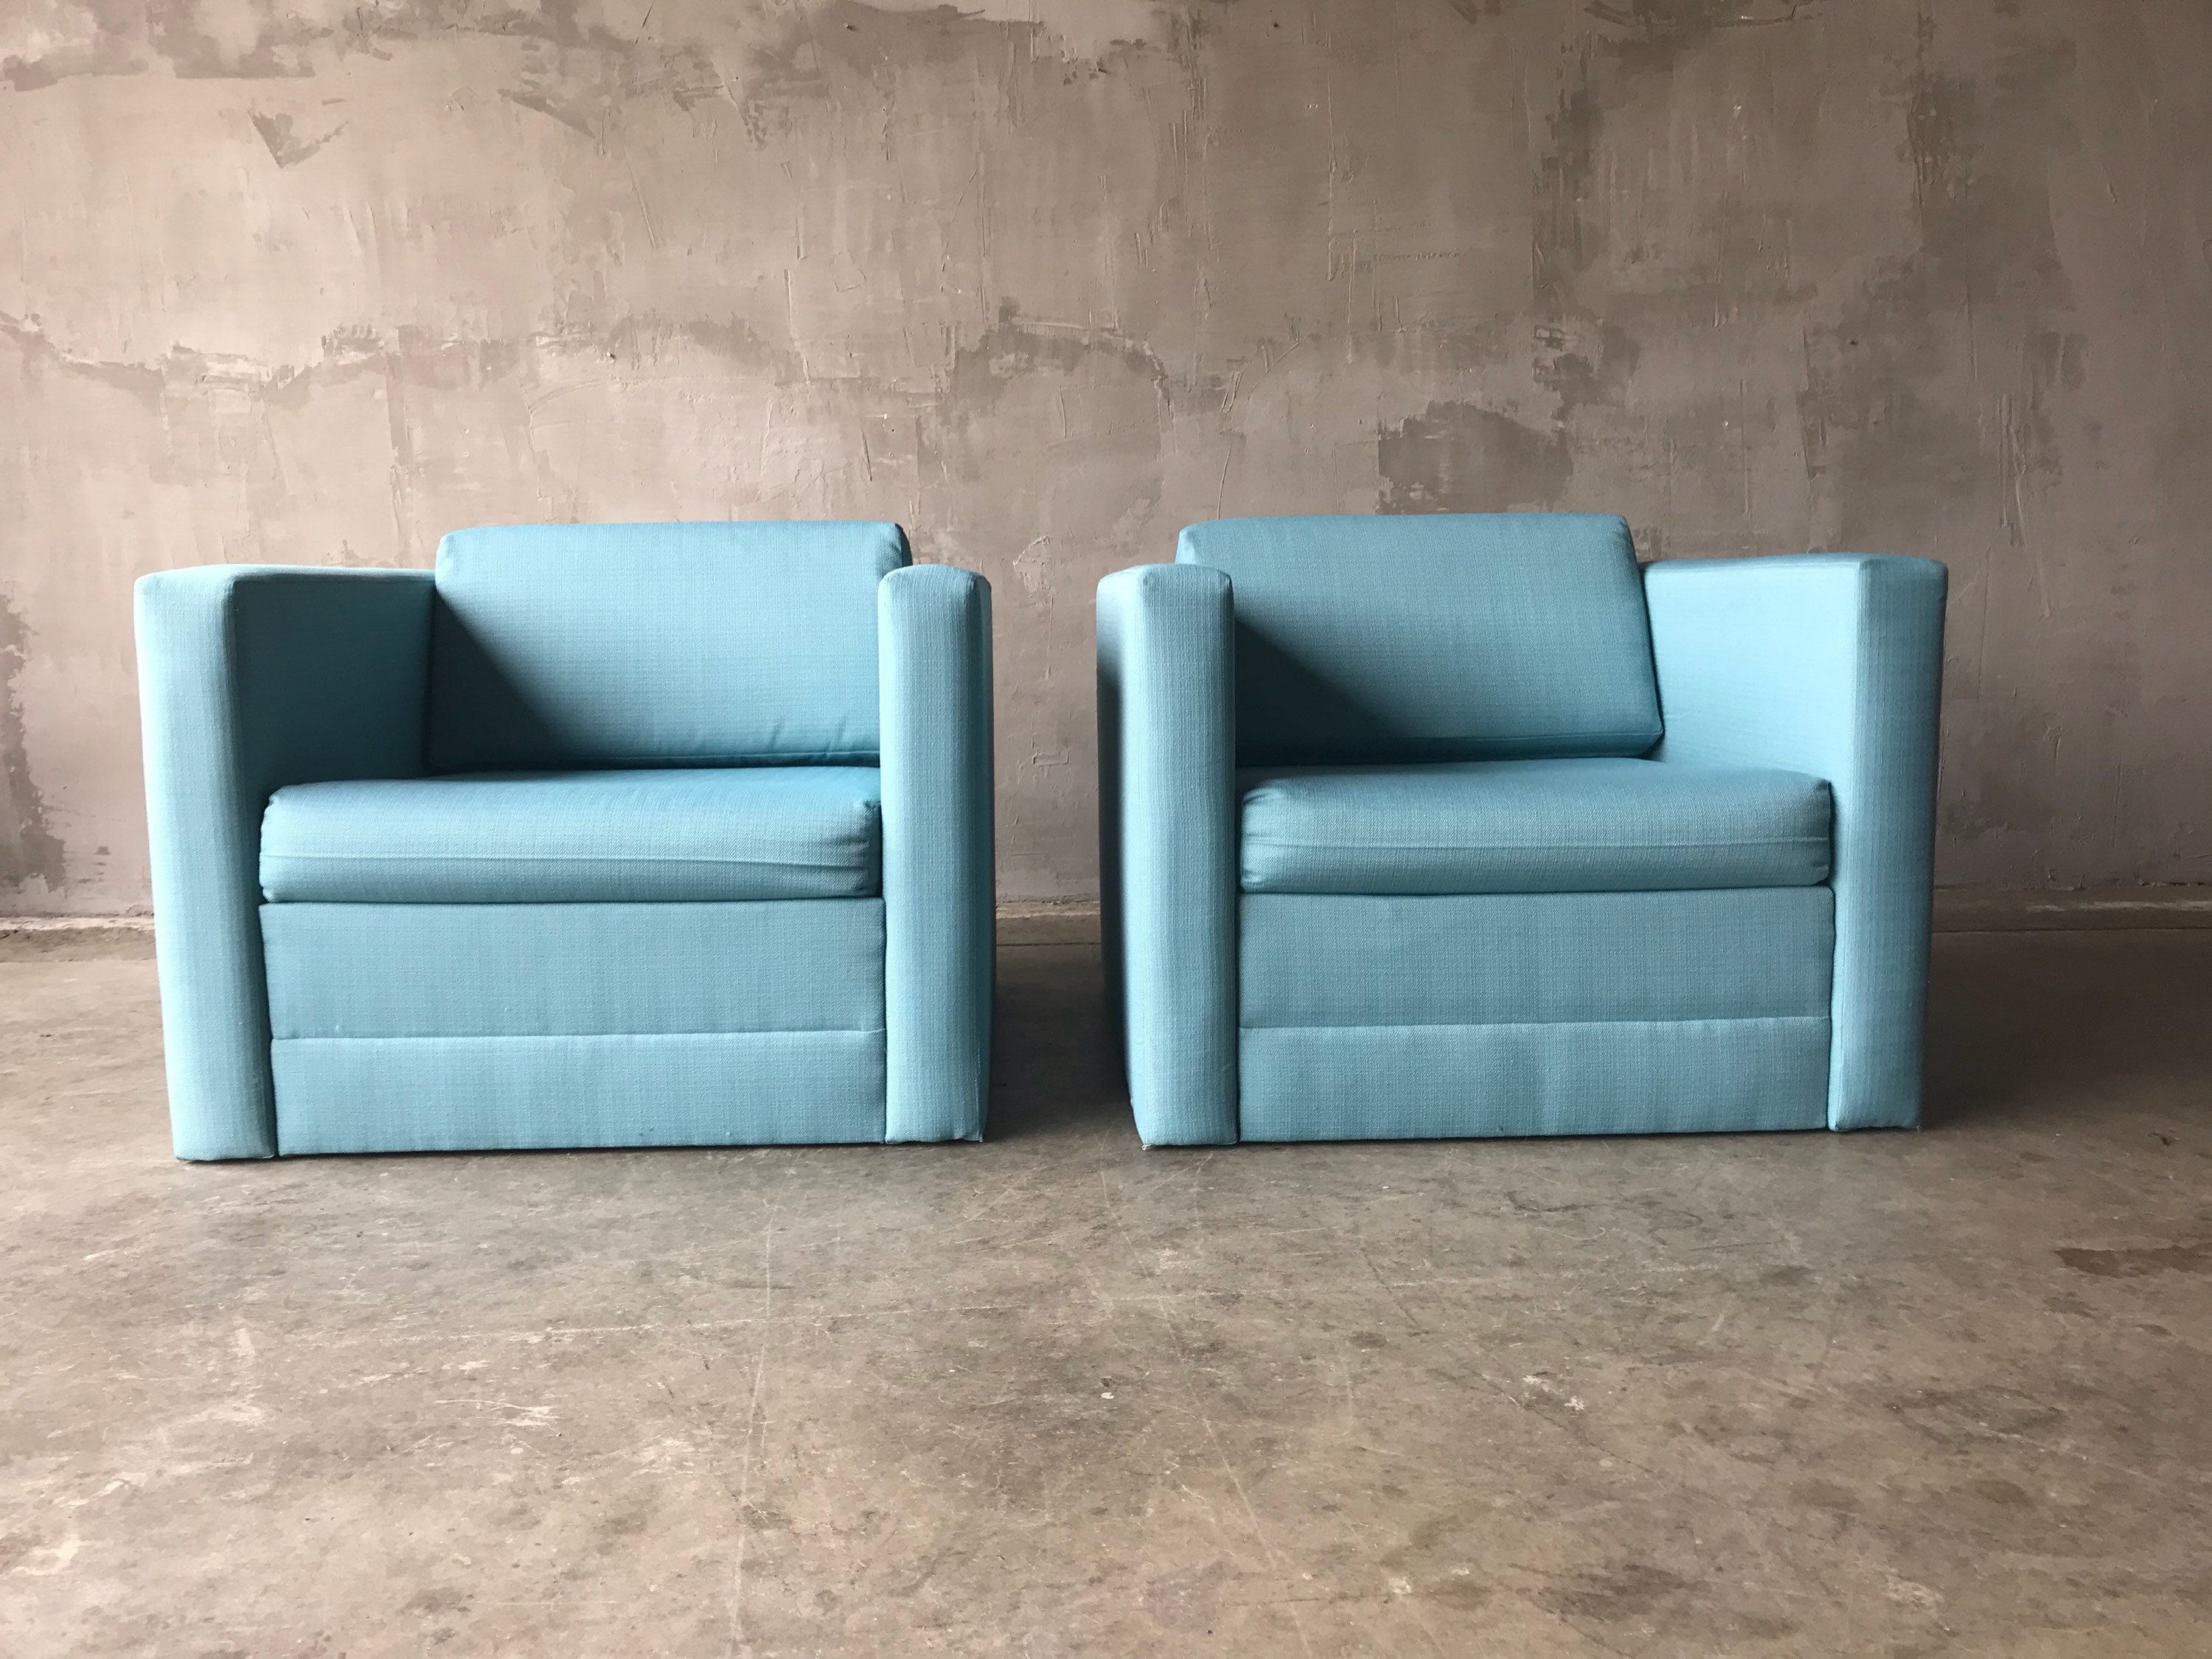 50 & Pair oversized club chairs | Etsy